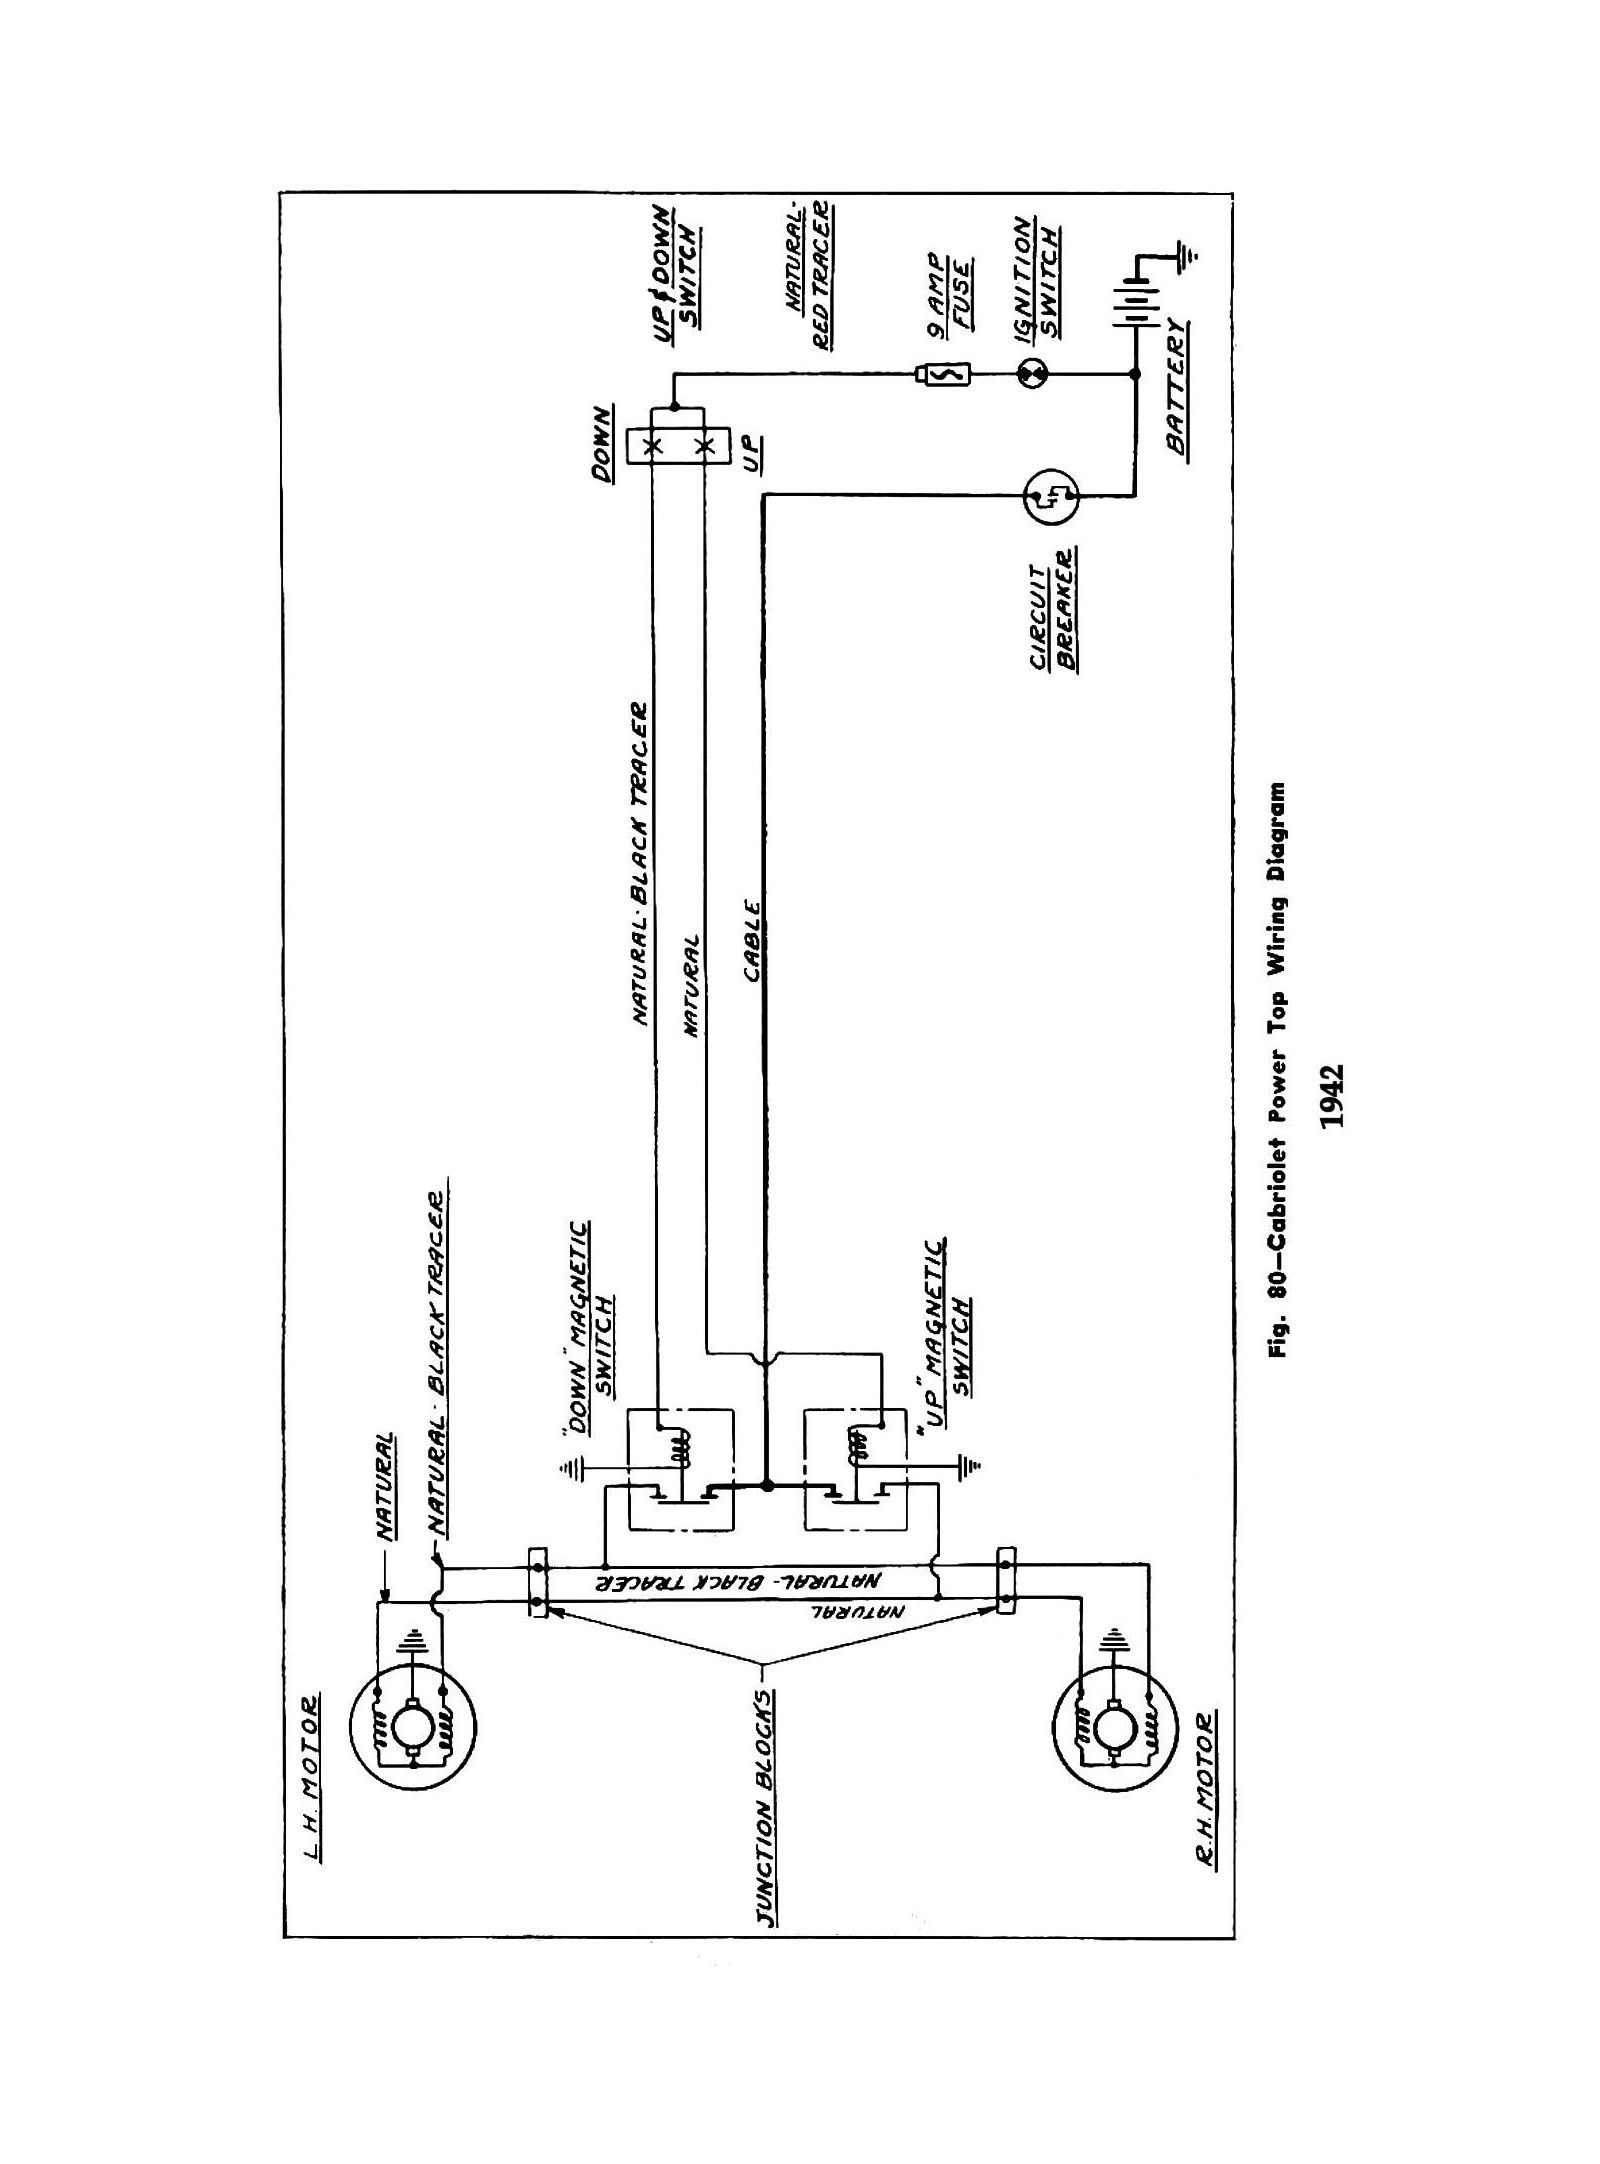 chevy wiring diagrams rh chevy oldcarmanualproject com 1937 chevy truck wiring diagram 1937 Chevrolet Wiring Diagram